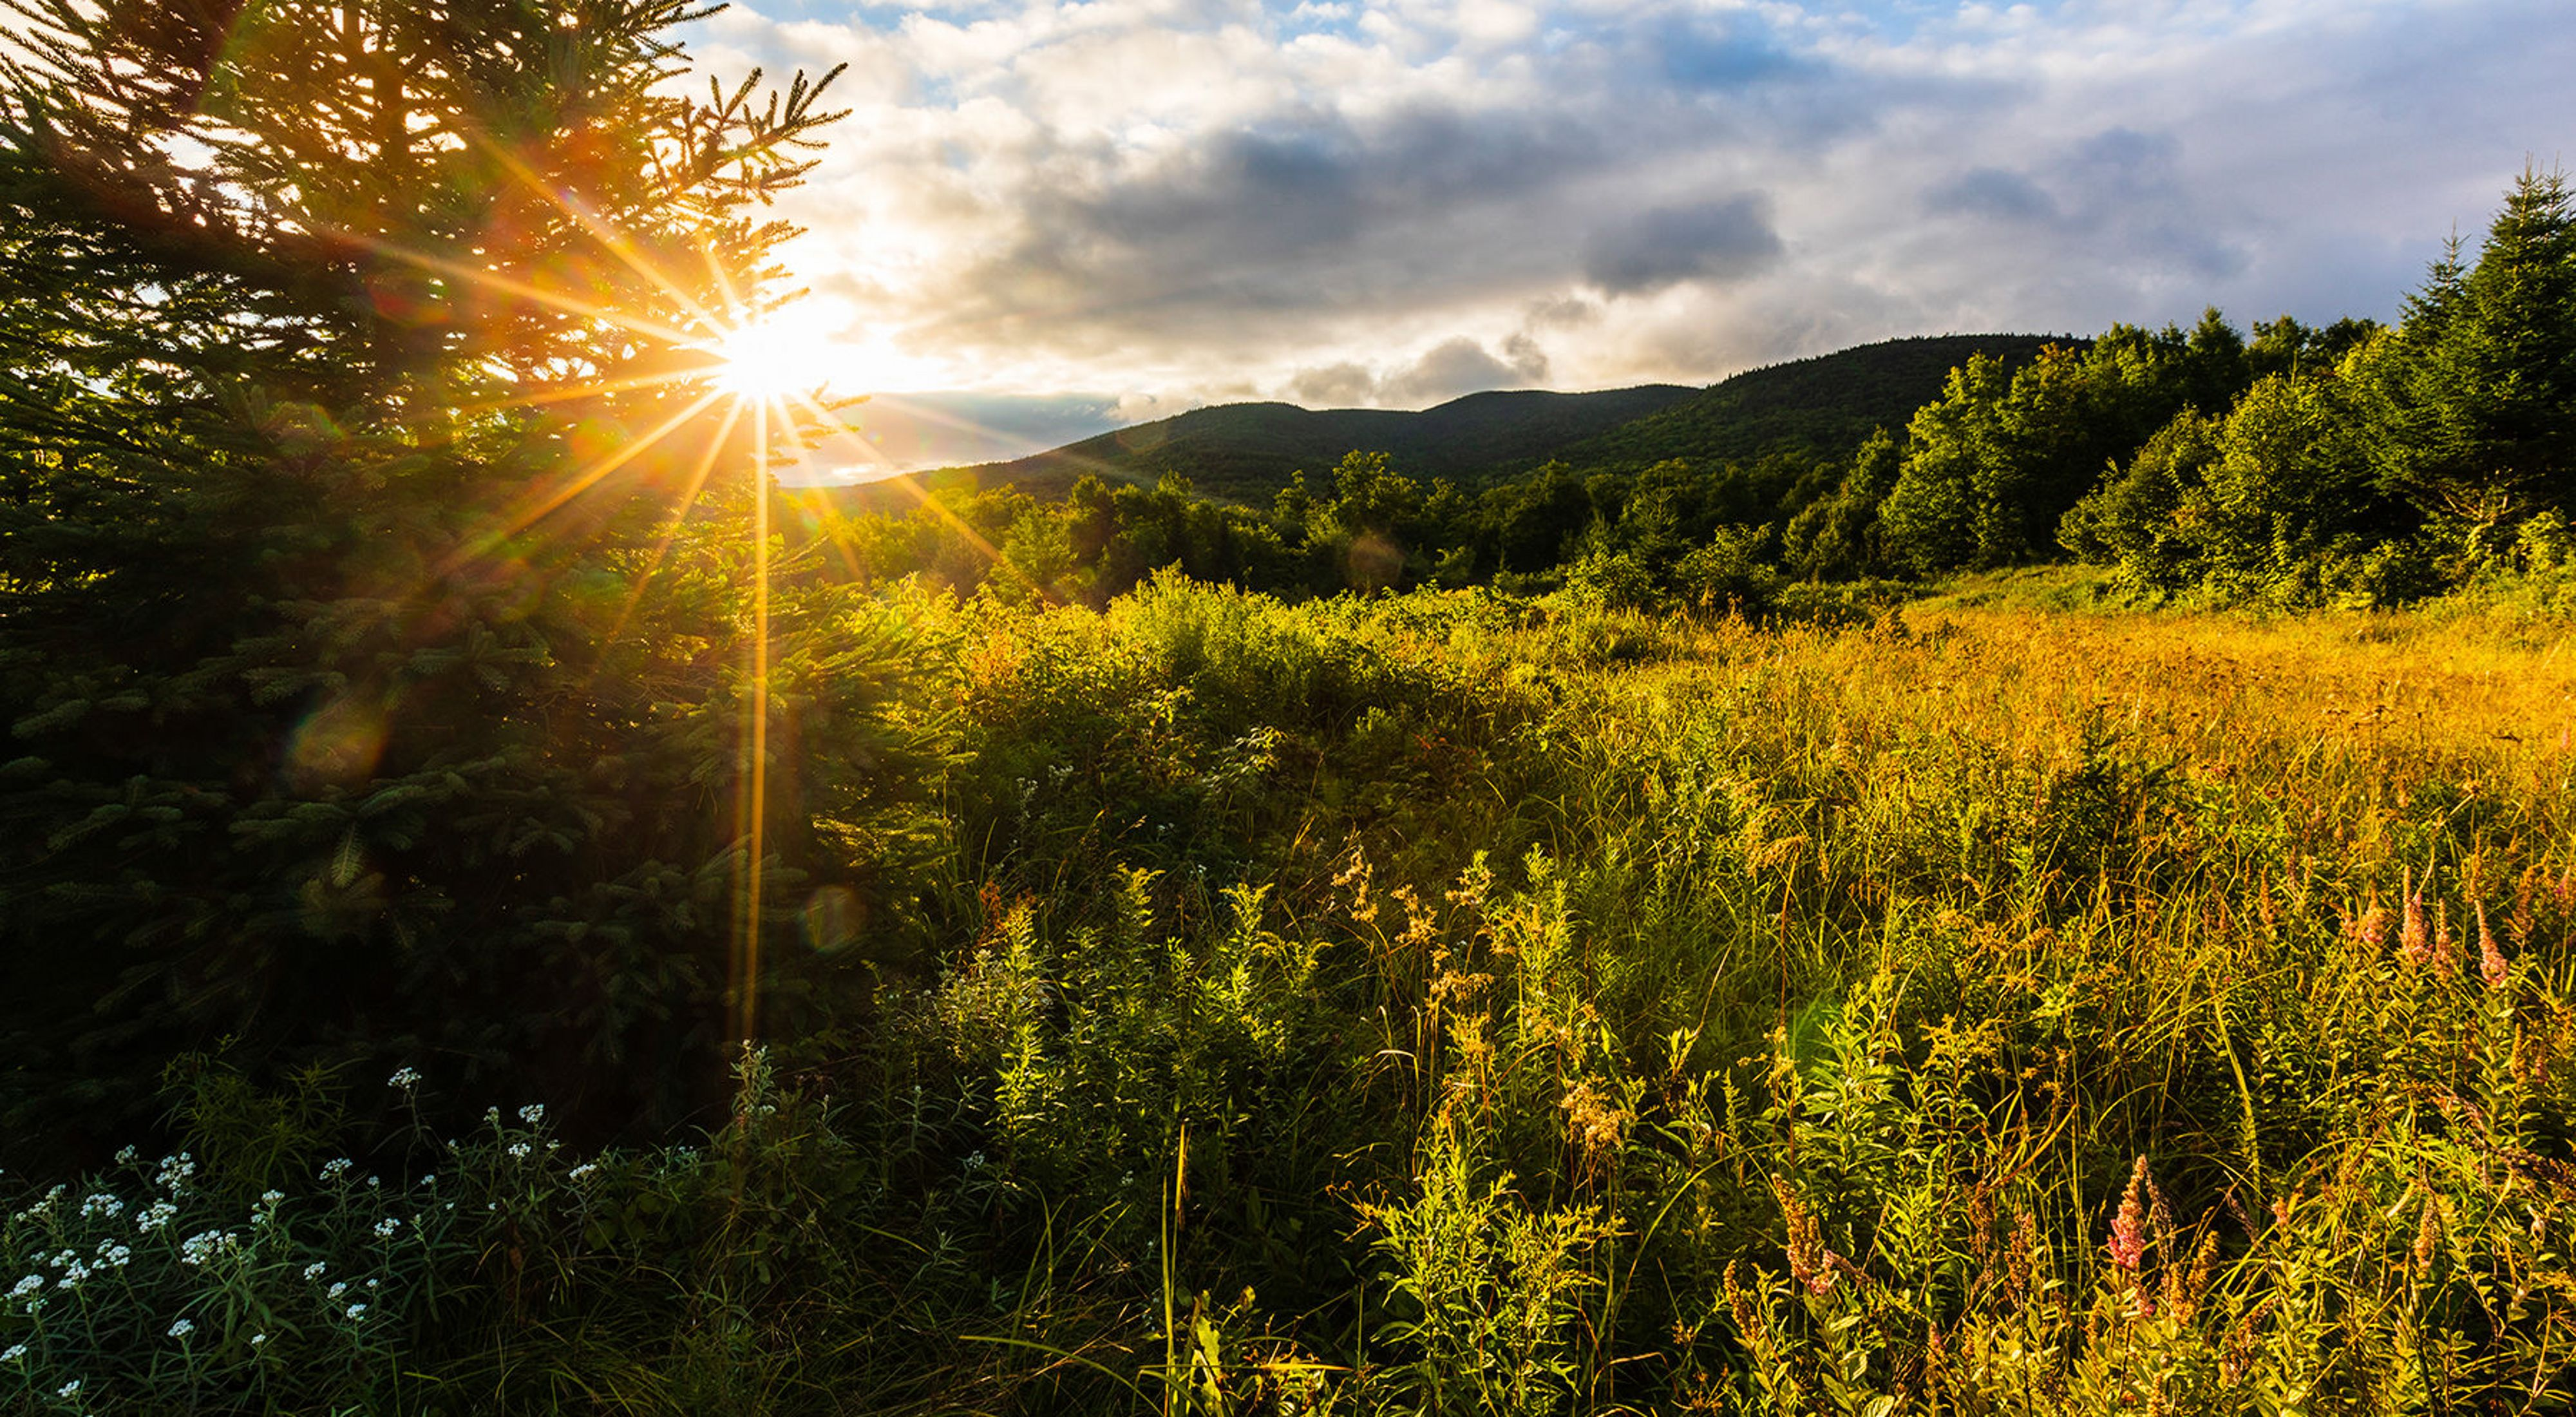 The sun rising over mountains lights a field to a golden color.